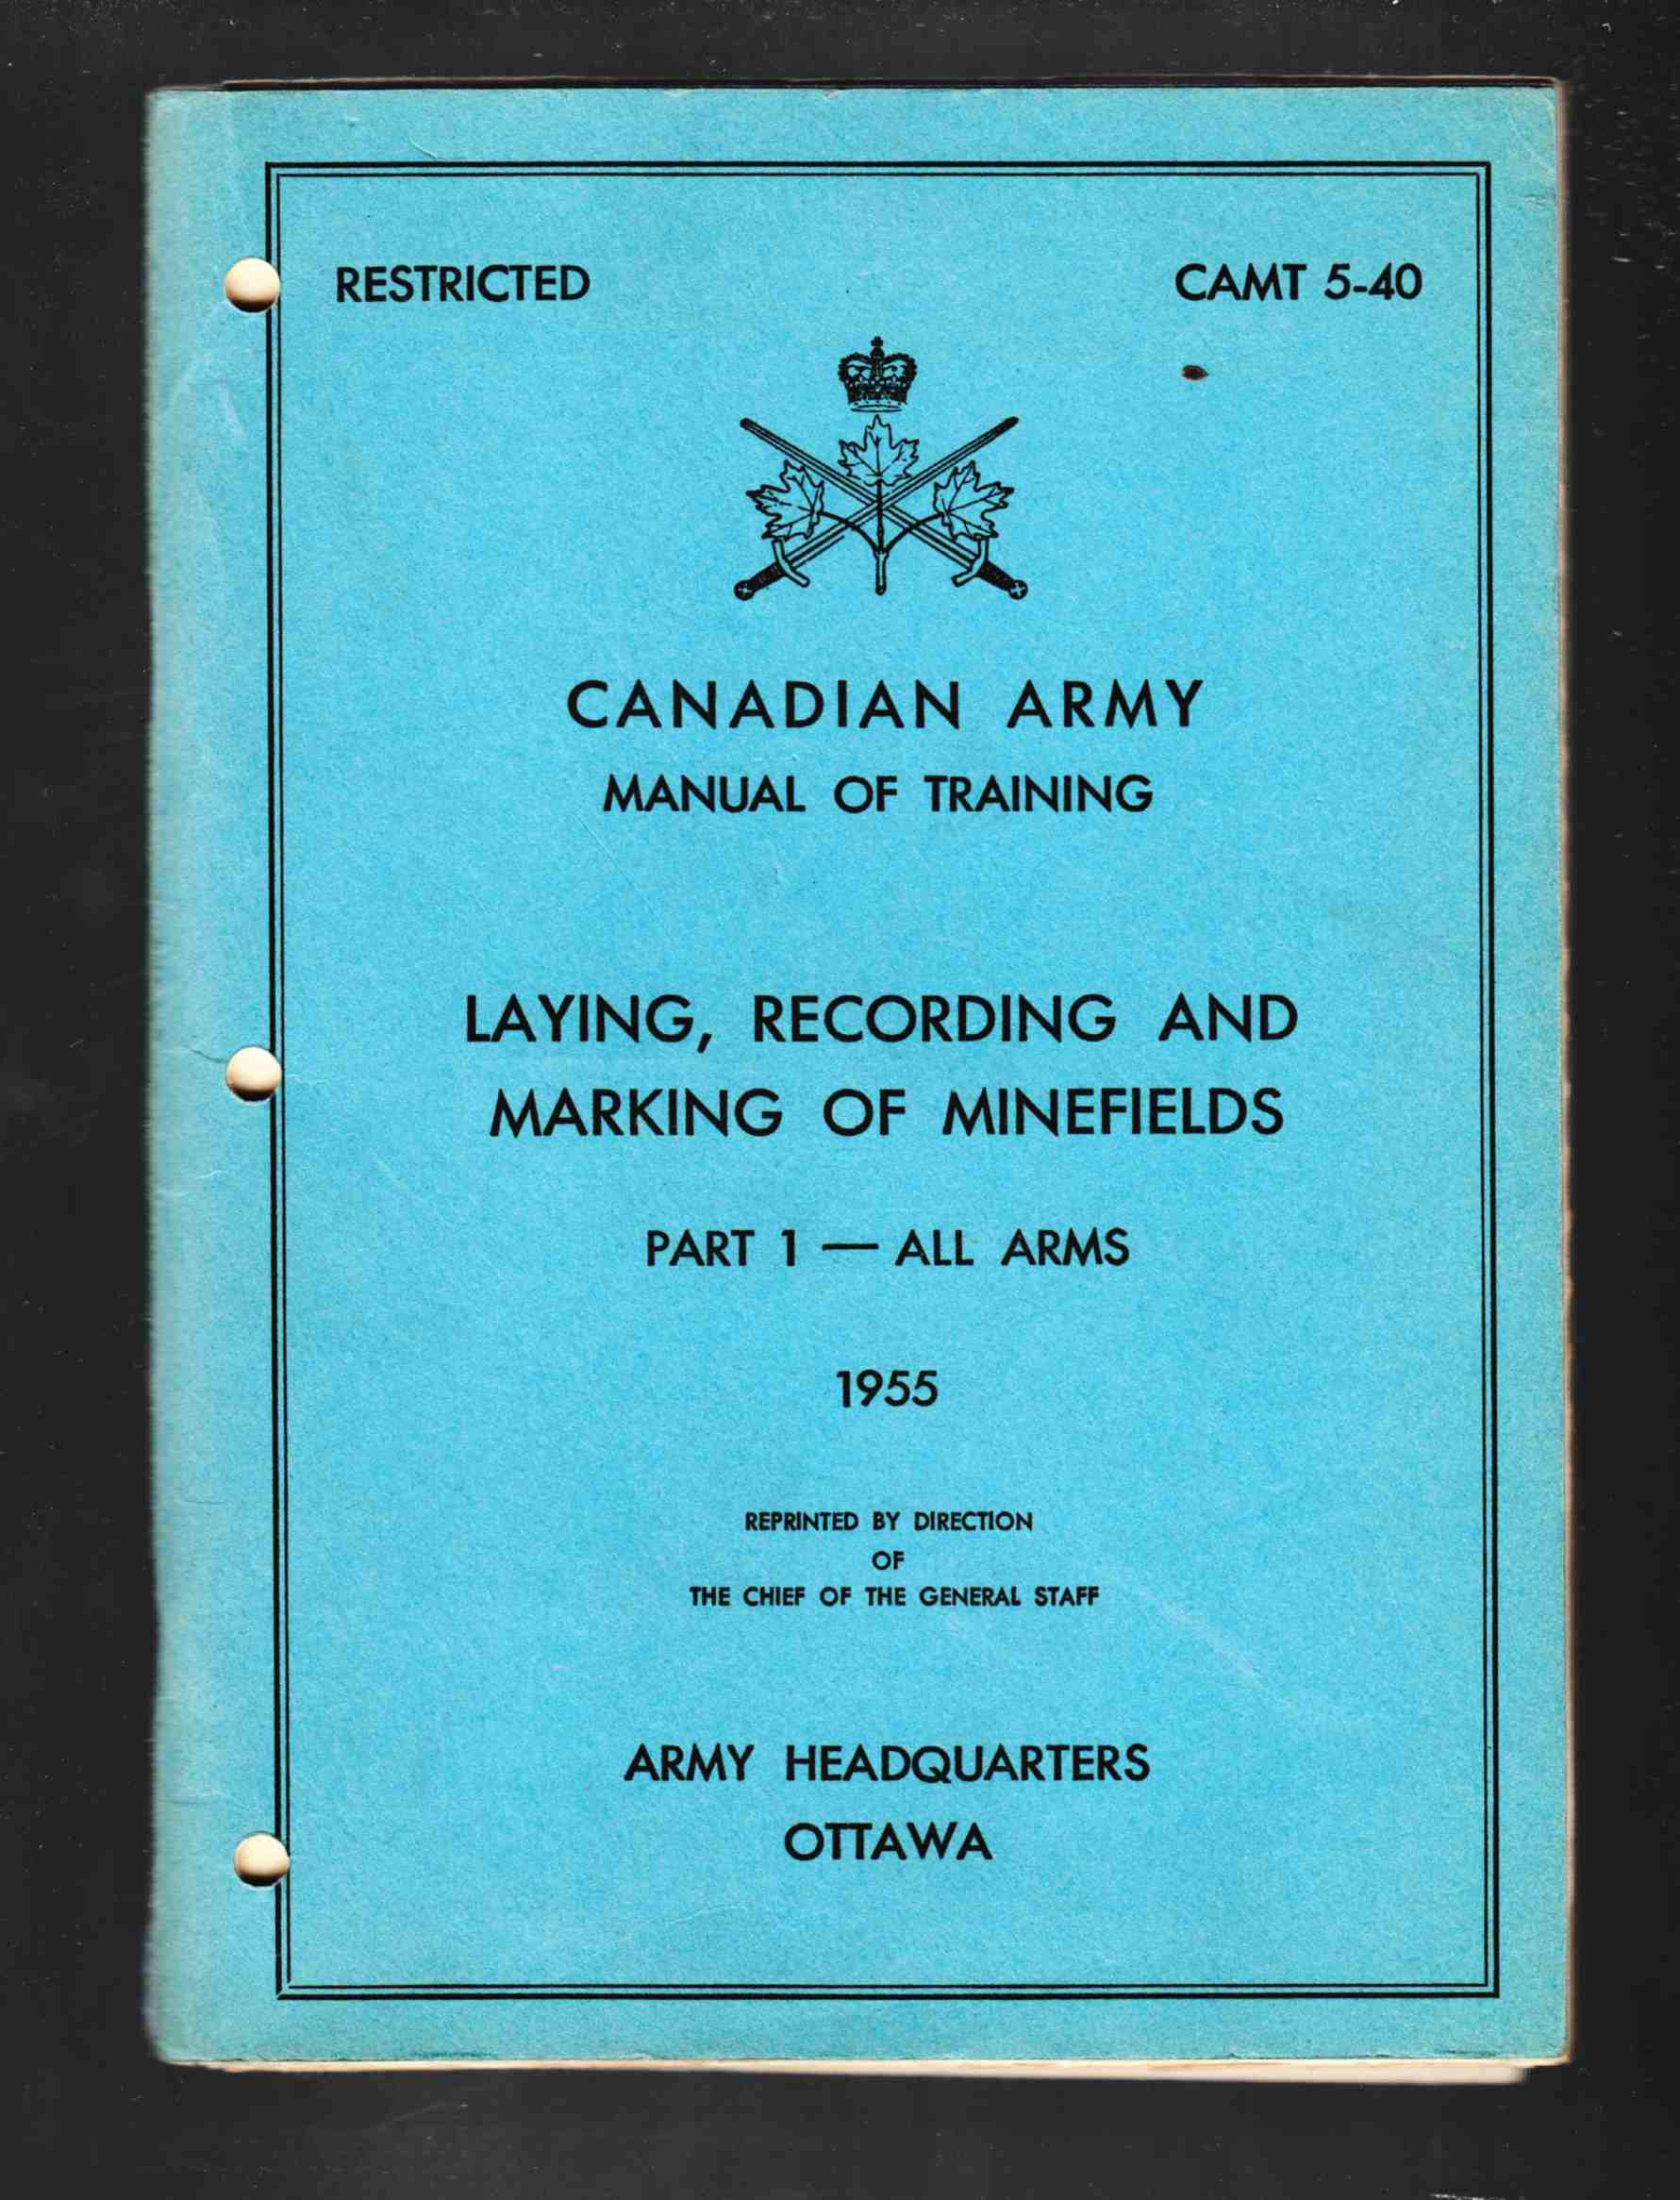 Image for Canadian Army Manual of Training Laying, Recording and Marking of Minefields Part 1 - All Arms 1955 CAMT 5-40